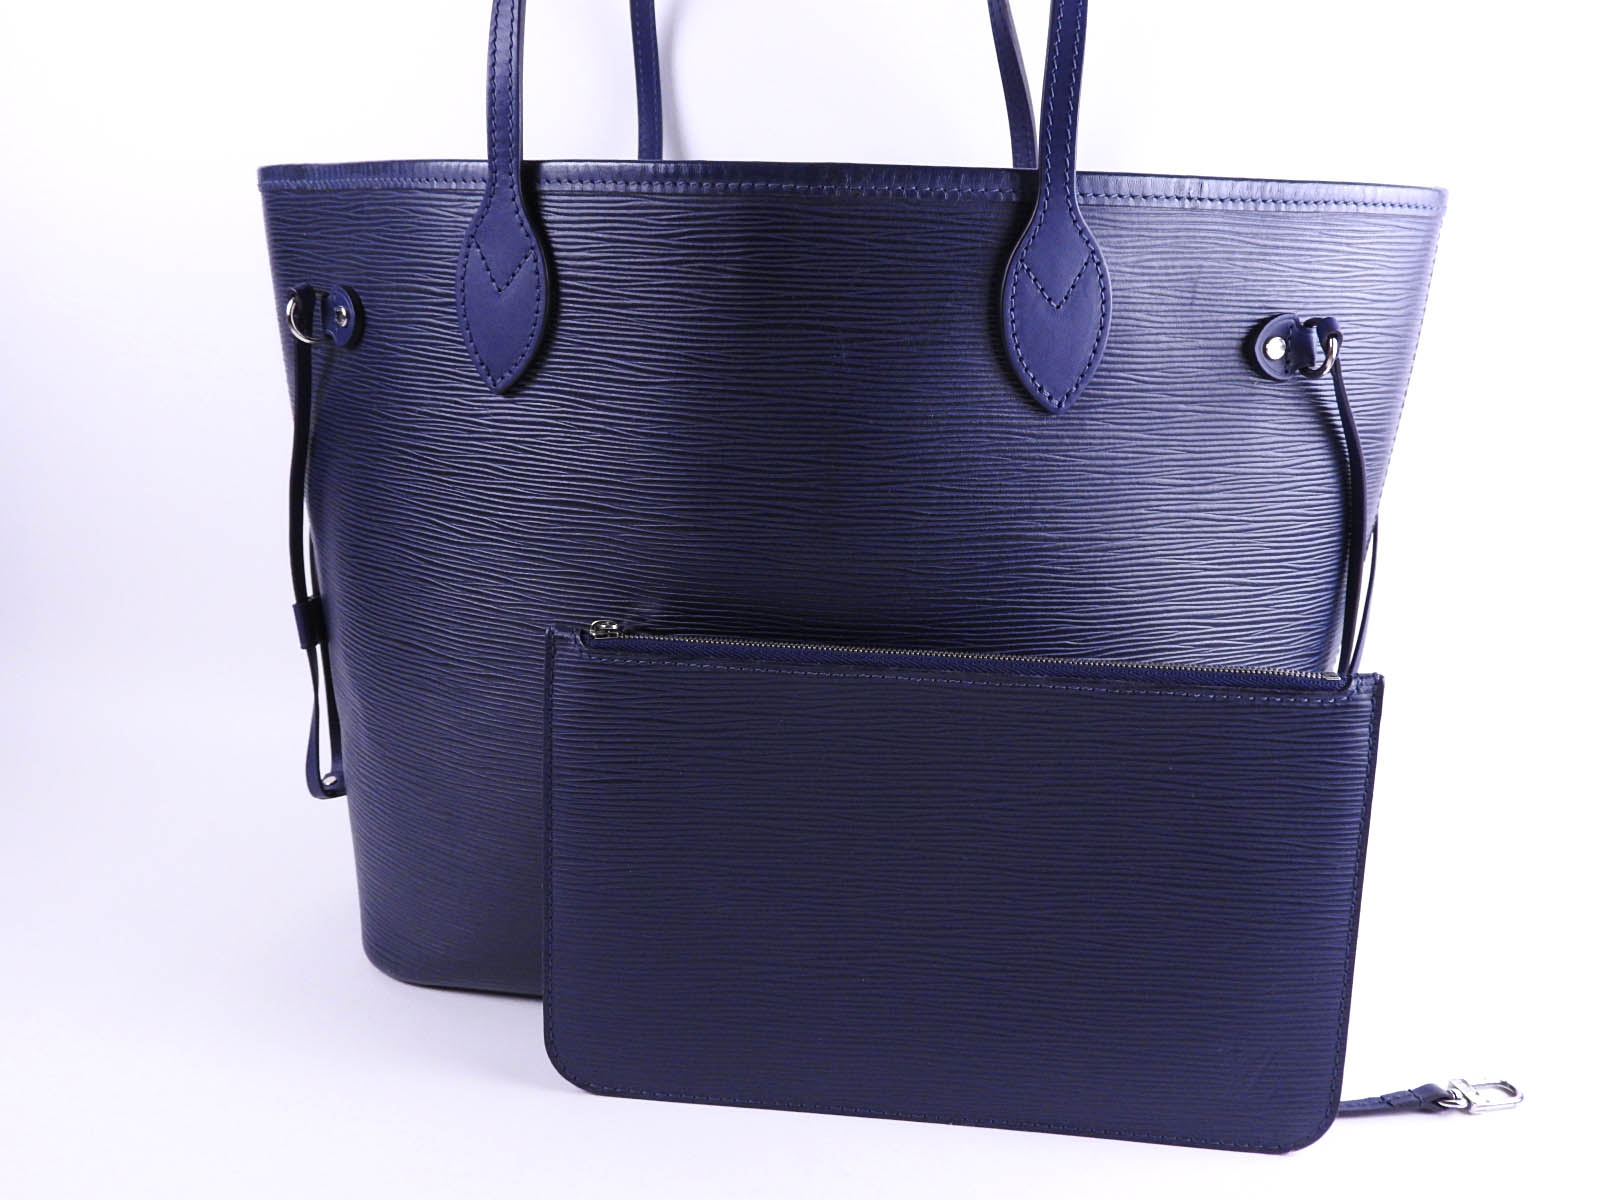 aa3fd96af Auth LOUIS VUITTON Neverfull MM Shoulder Tote Bag with Pouch Epi Indigo  Blue M40885 A-9509